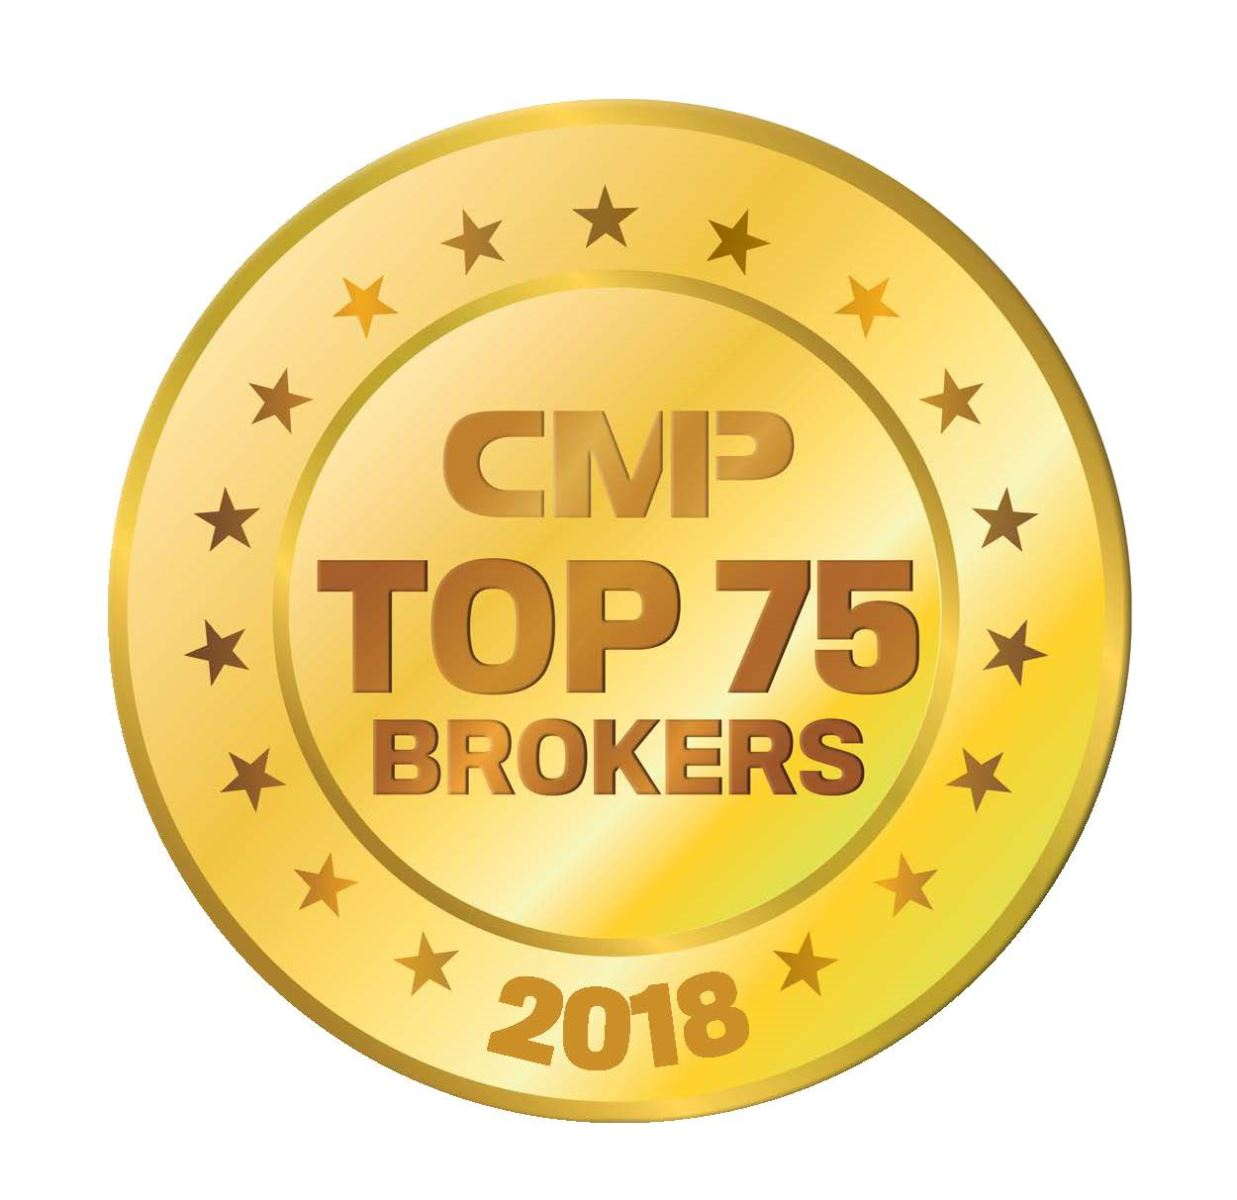 CMP Top 75 Brokers 2018